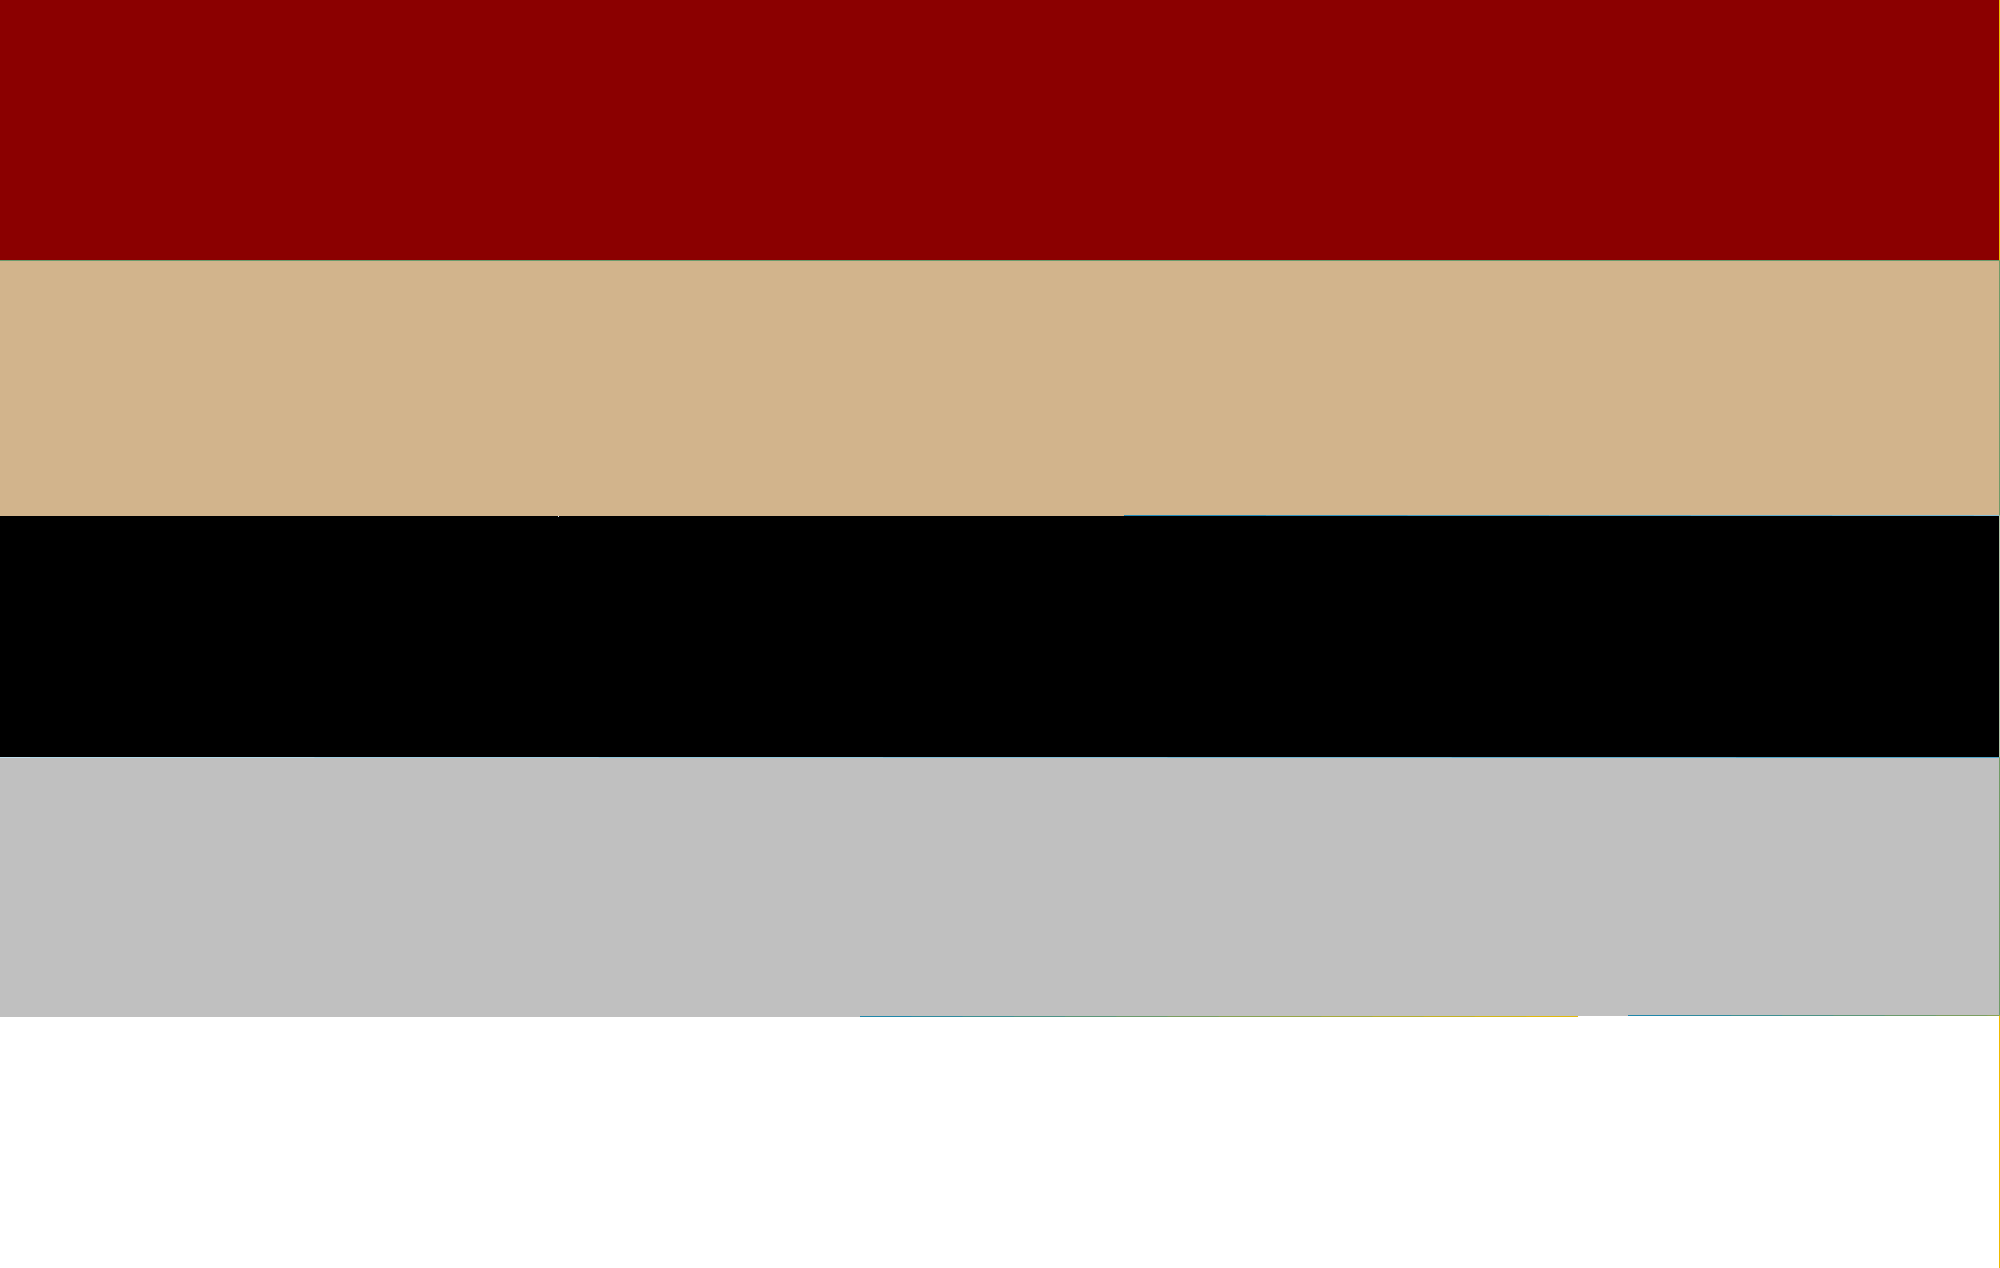 File:Flag five stripes Maroon Tan Black Gray Withe.png - Wikimedia ...